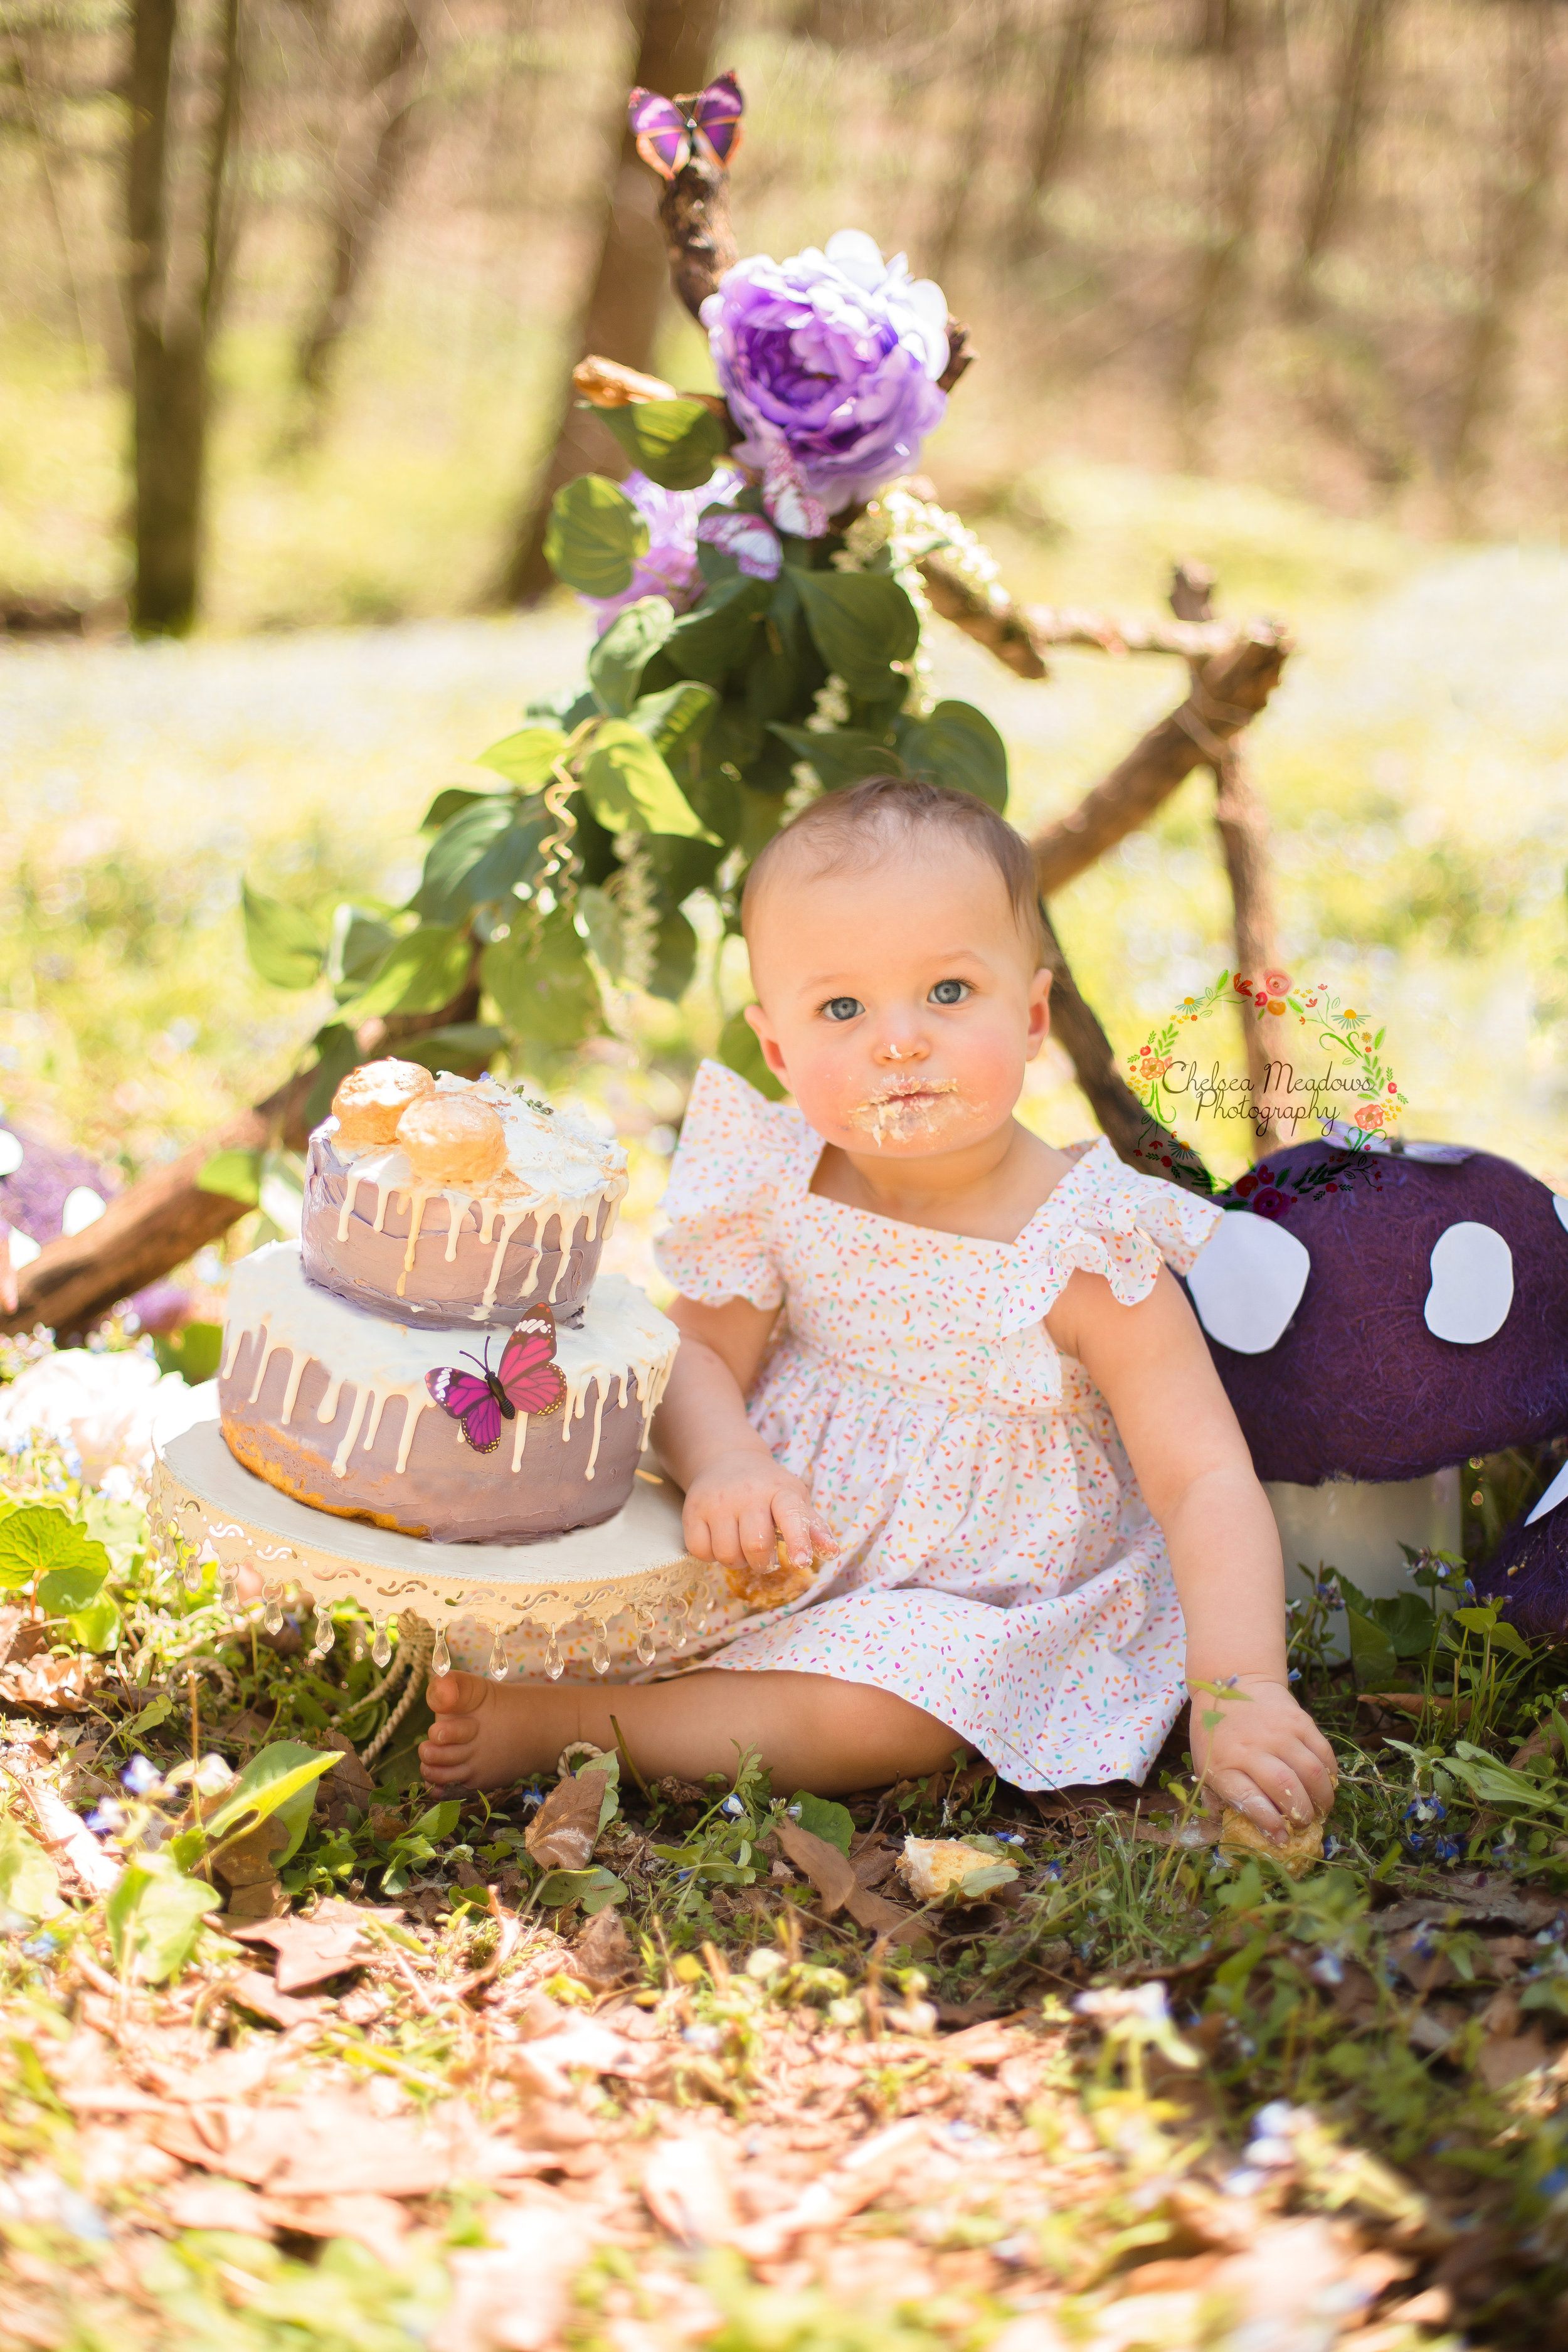 Ivy Cake Smash - Nashville Family Photographer - Chelsea Meadows Photography (17).jpg